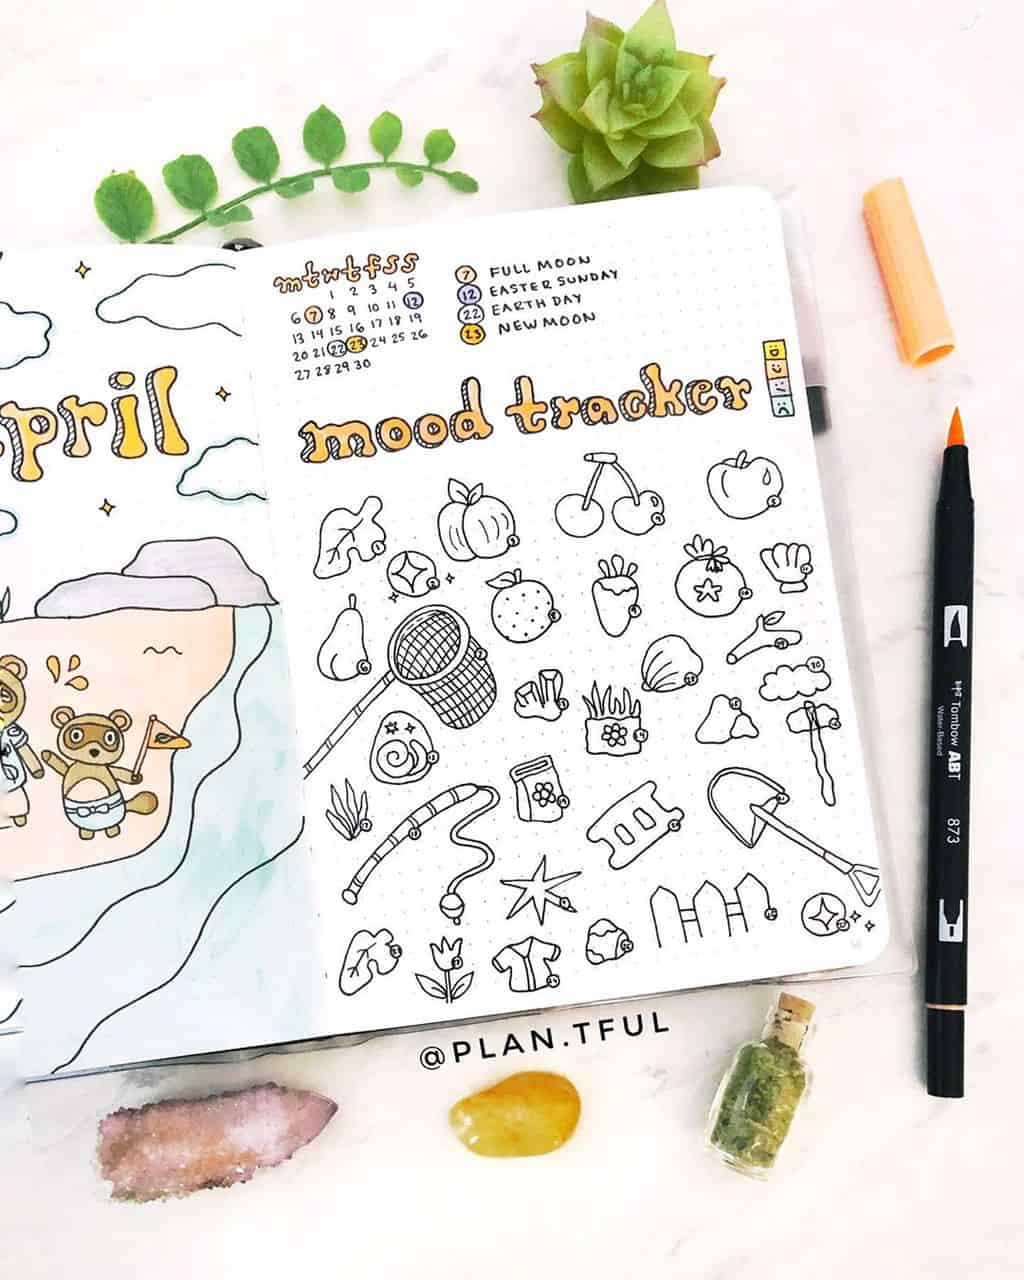 Animal Crossing Bullet Journal Inspirations - mood tracker by @plan.tful | Masha Plans